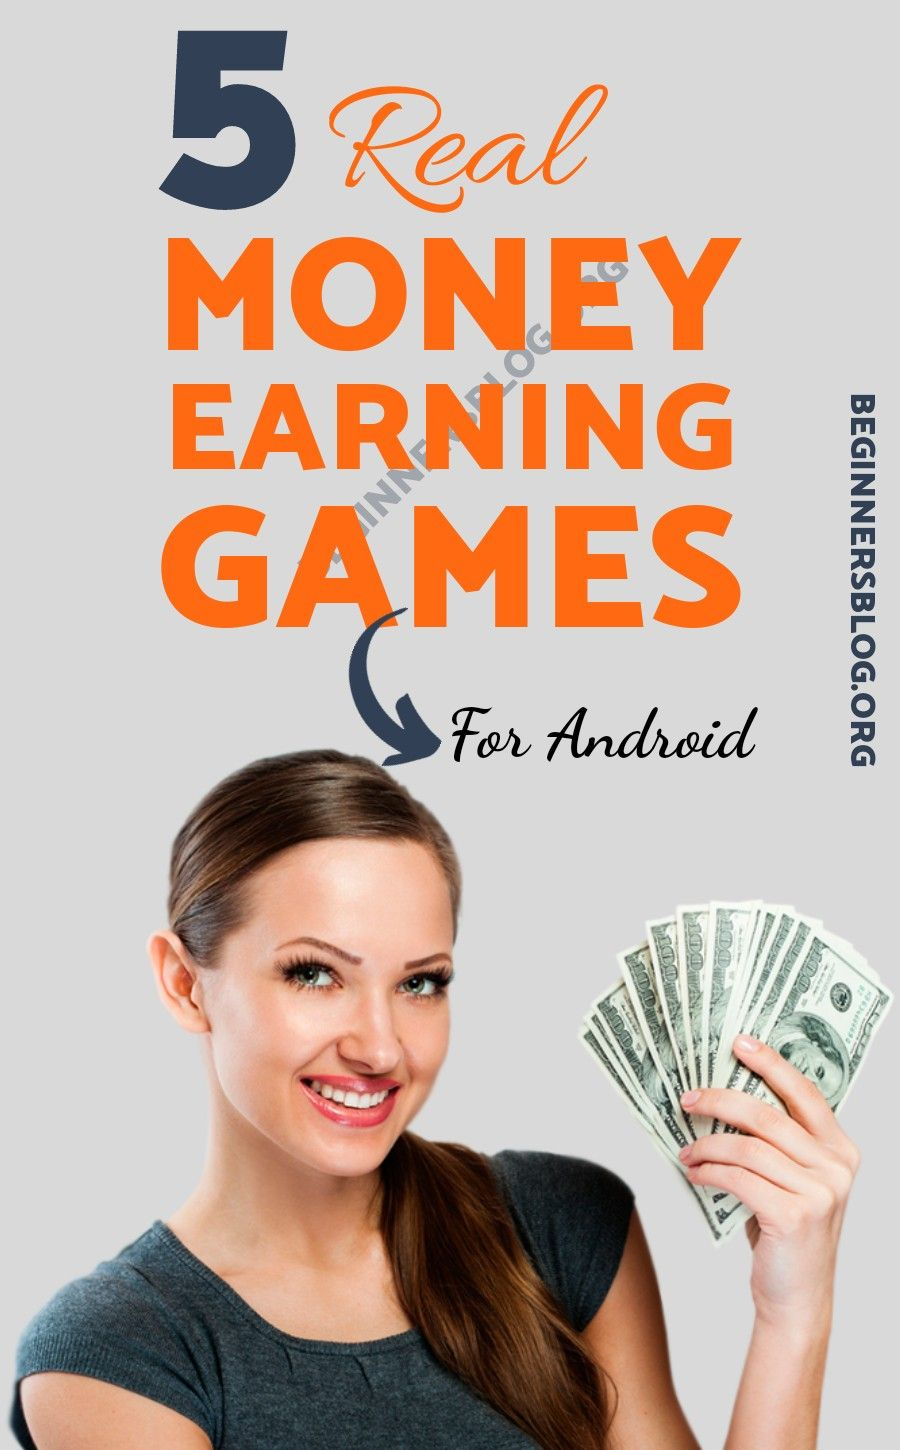 Android Games To Earn Real Money